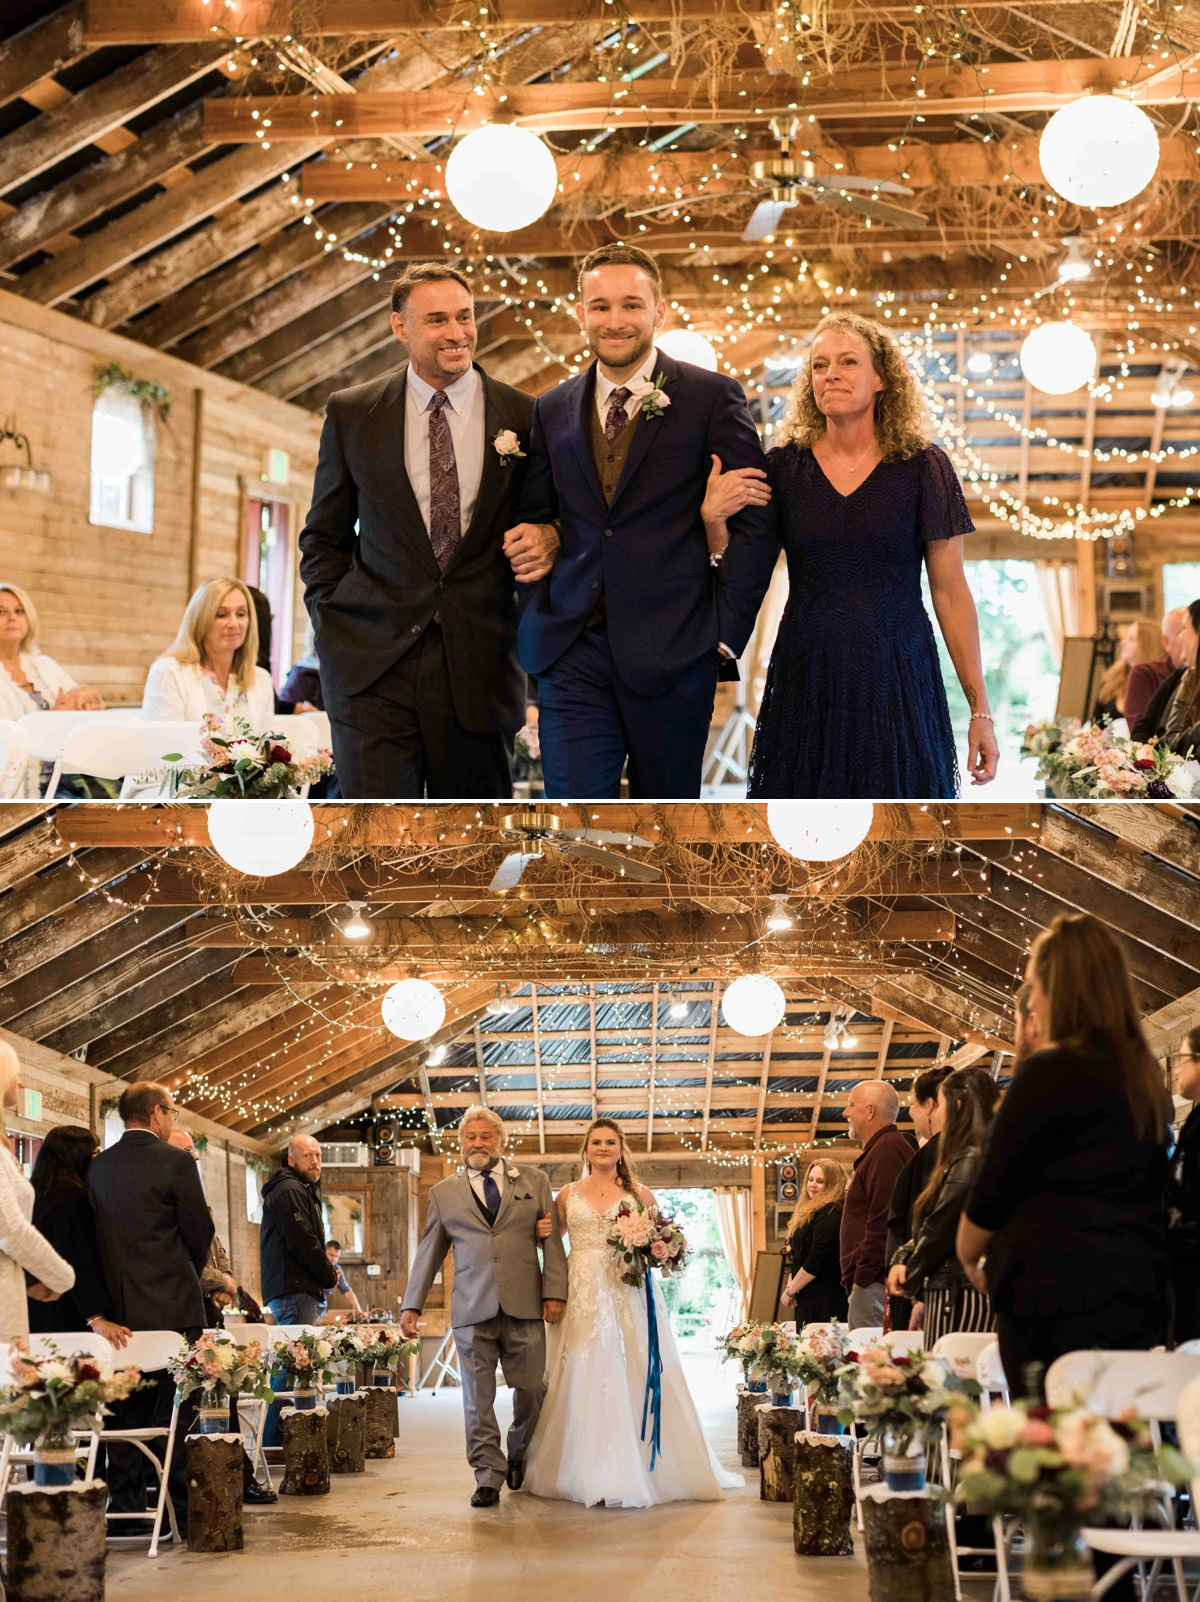 Walking the aisle at Craven Farms in Snohomish. Photos by Joanna Monger Photography, Snohomish and Seattle Wedding Photographer.